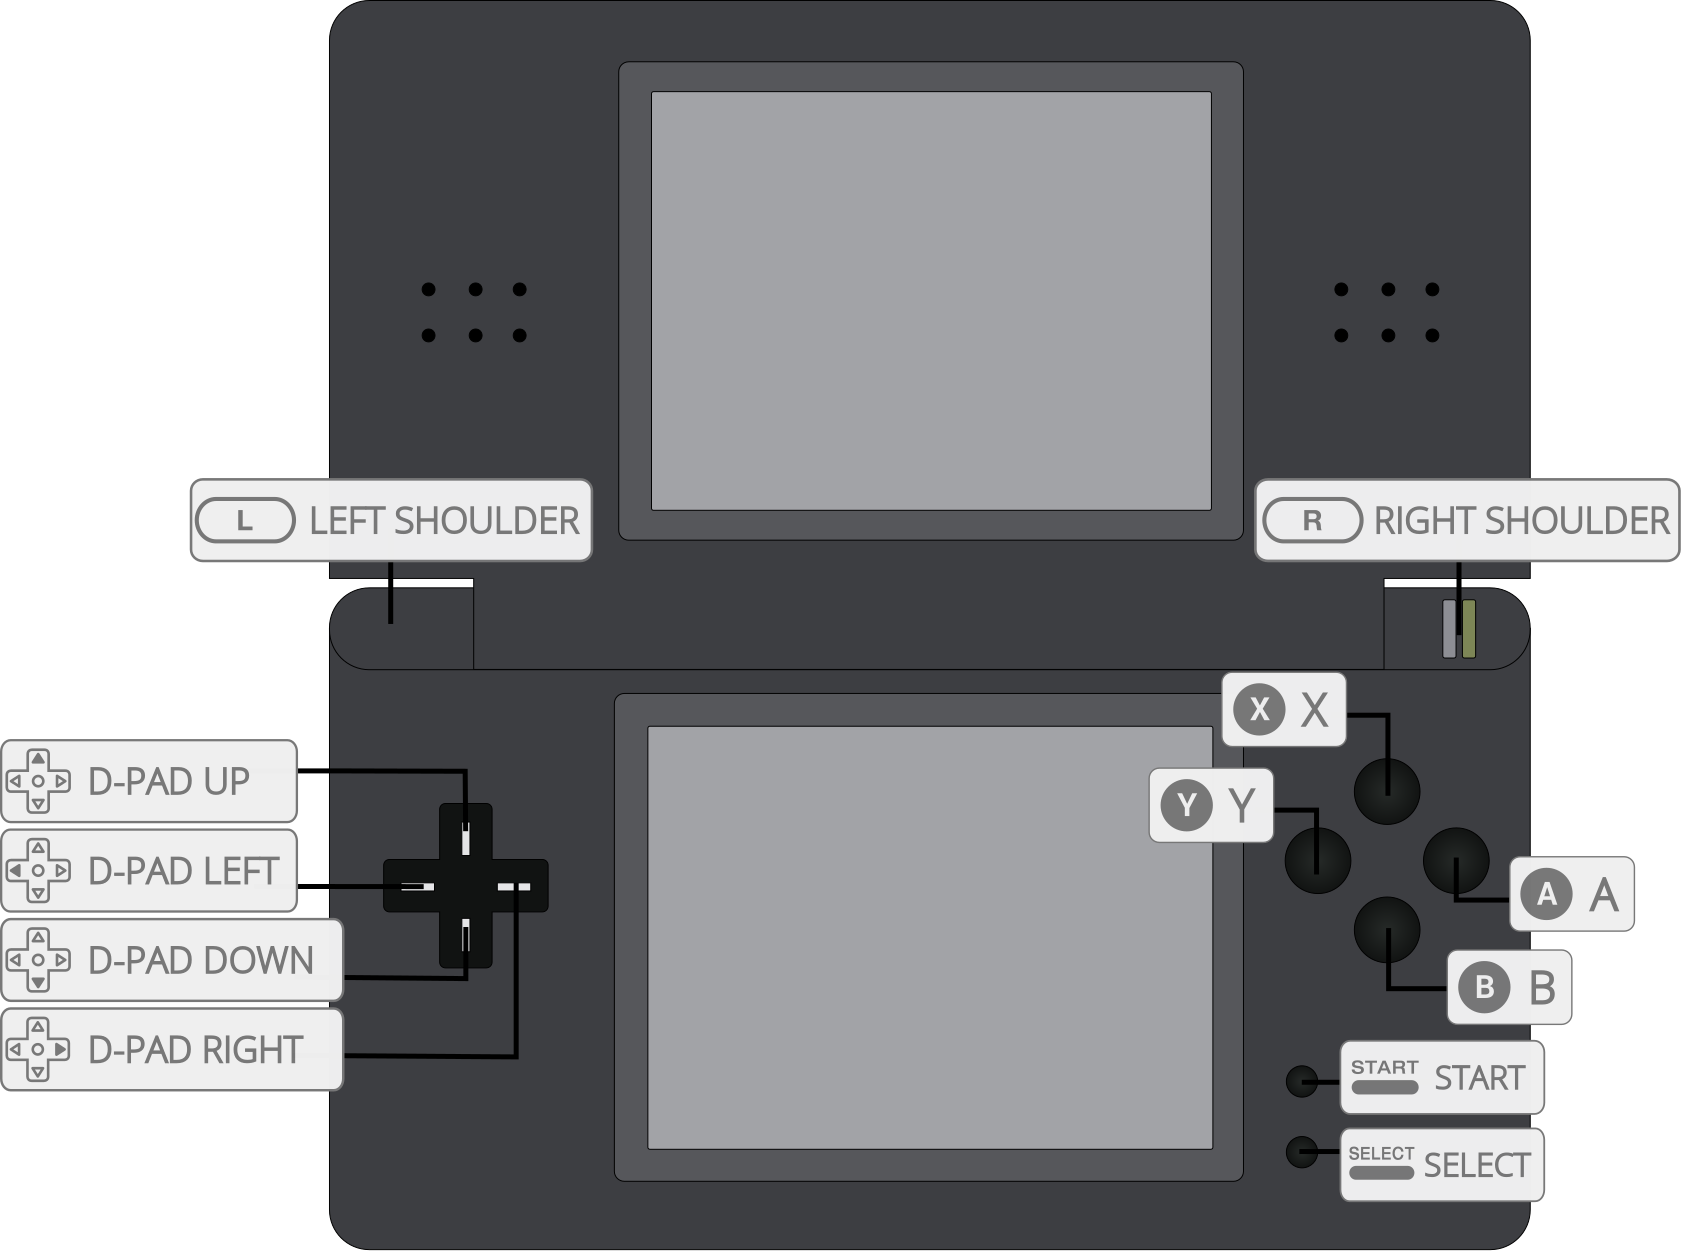 Nintendo - DS (DeSmuME) - Libretro Docs on names of garage doors, names of parks, names of restaurants, names of services, names of motor homes, names of tile, names of windows, names of banks, names of life insurance, names of storage facilities, names of signs, 4-bedroom modular homes, names of investments, names of buildings, names of churches, names of fencing, names of offices, names of jewelry, names of hotels, names of boats,